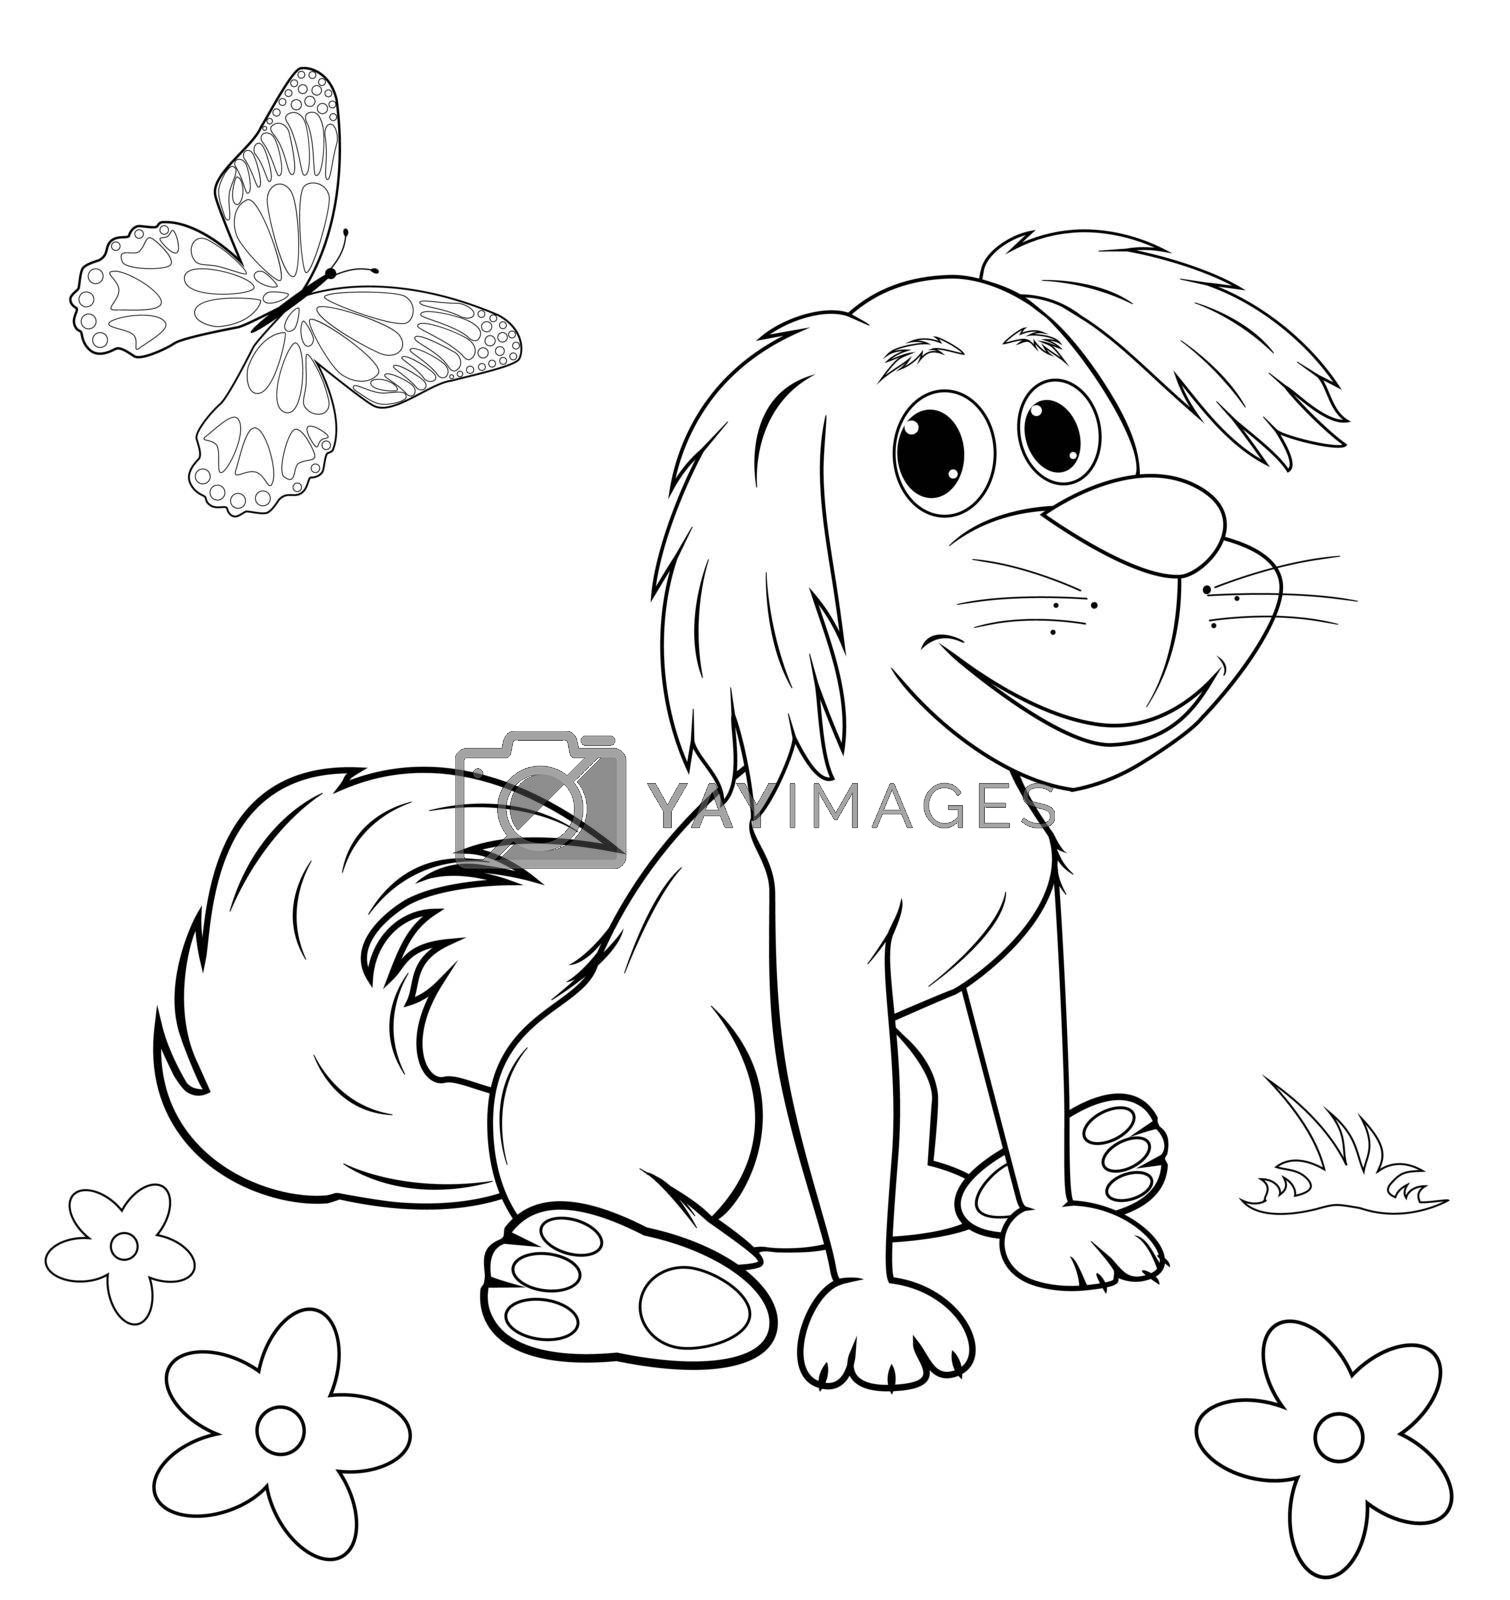 Royalty free image of Cute cartoon dog coloring page by liolle